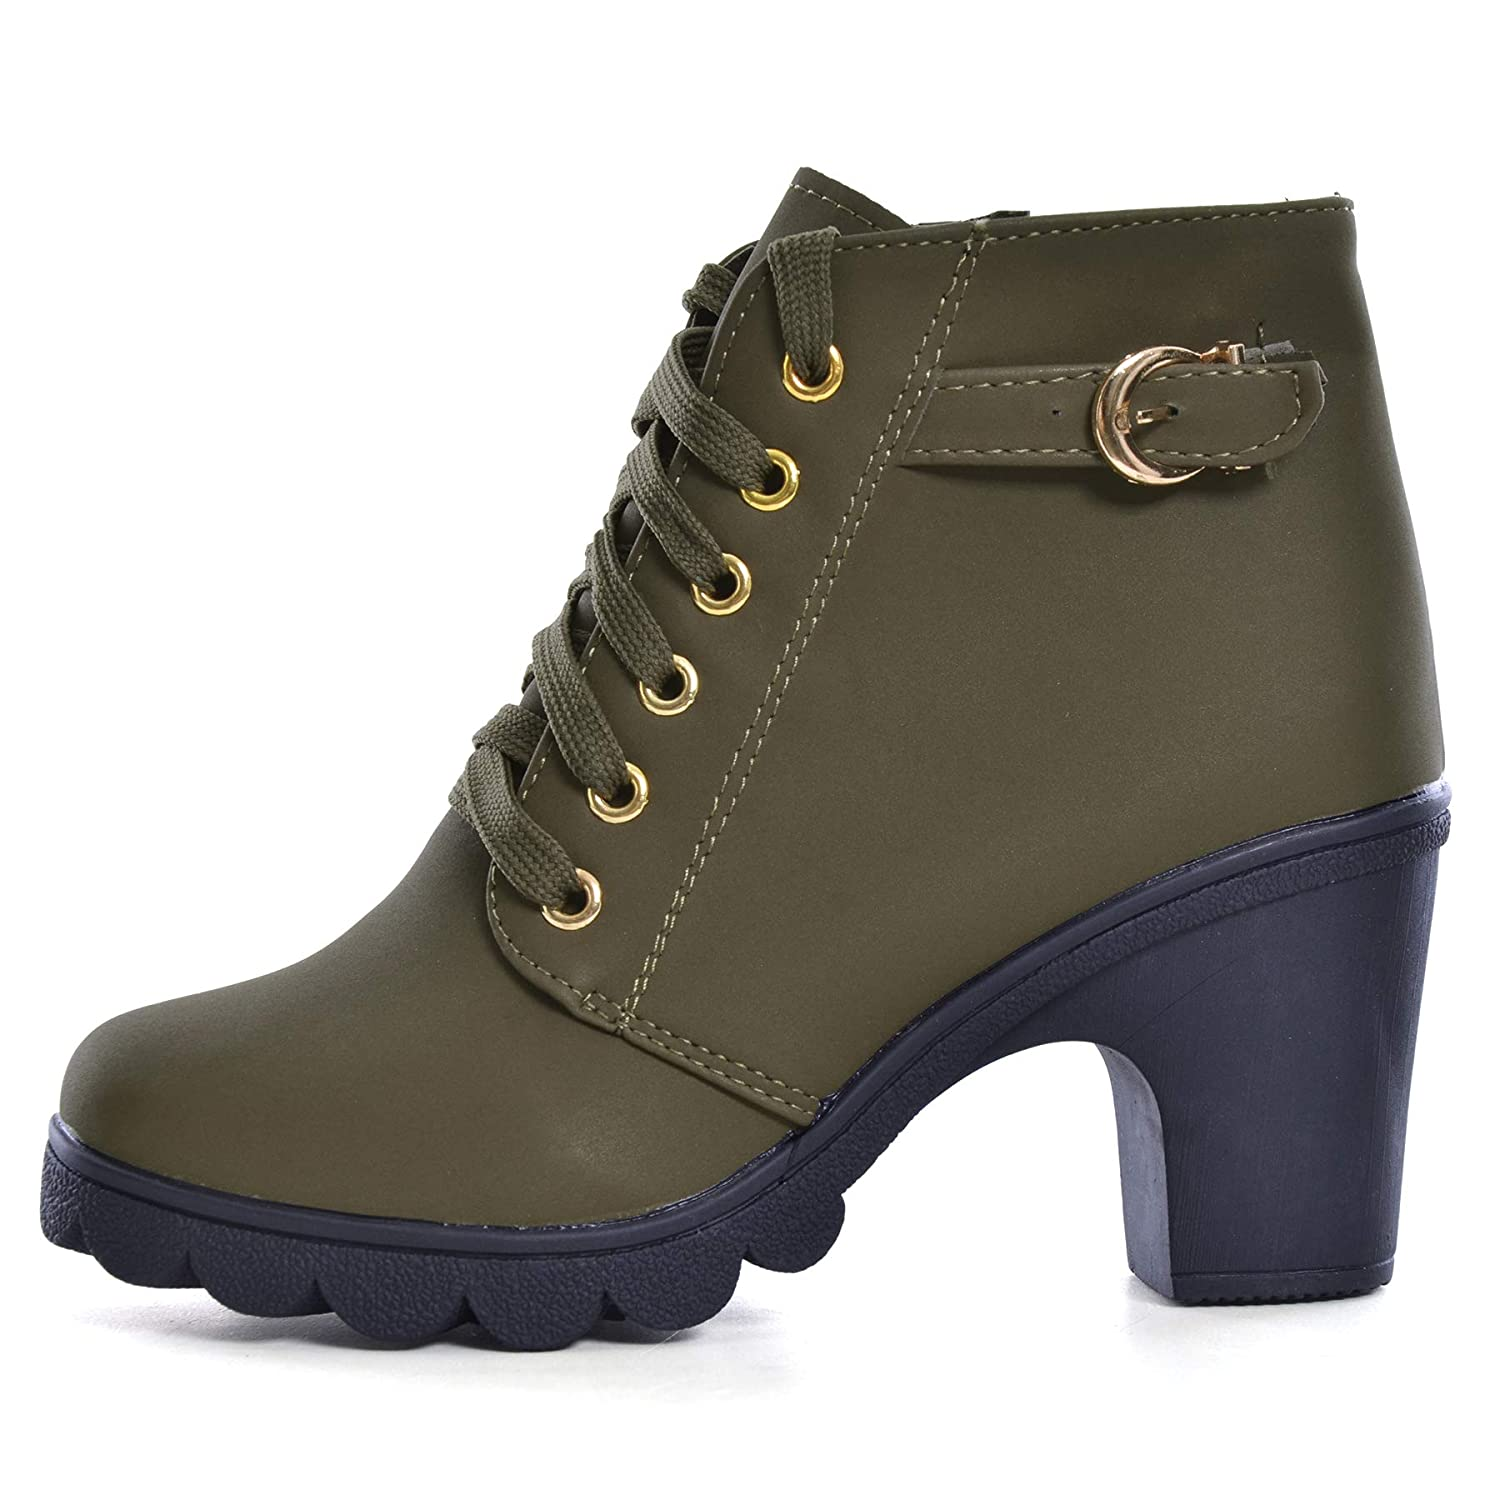 8820bea81b Amazon.com: Womens Ankle Boots Lace Up High Heel Comfort Fashion Buckle  Martin Boots Autumn Winter Womens Shoes: Shoes